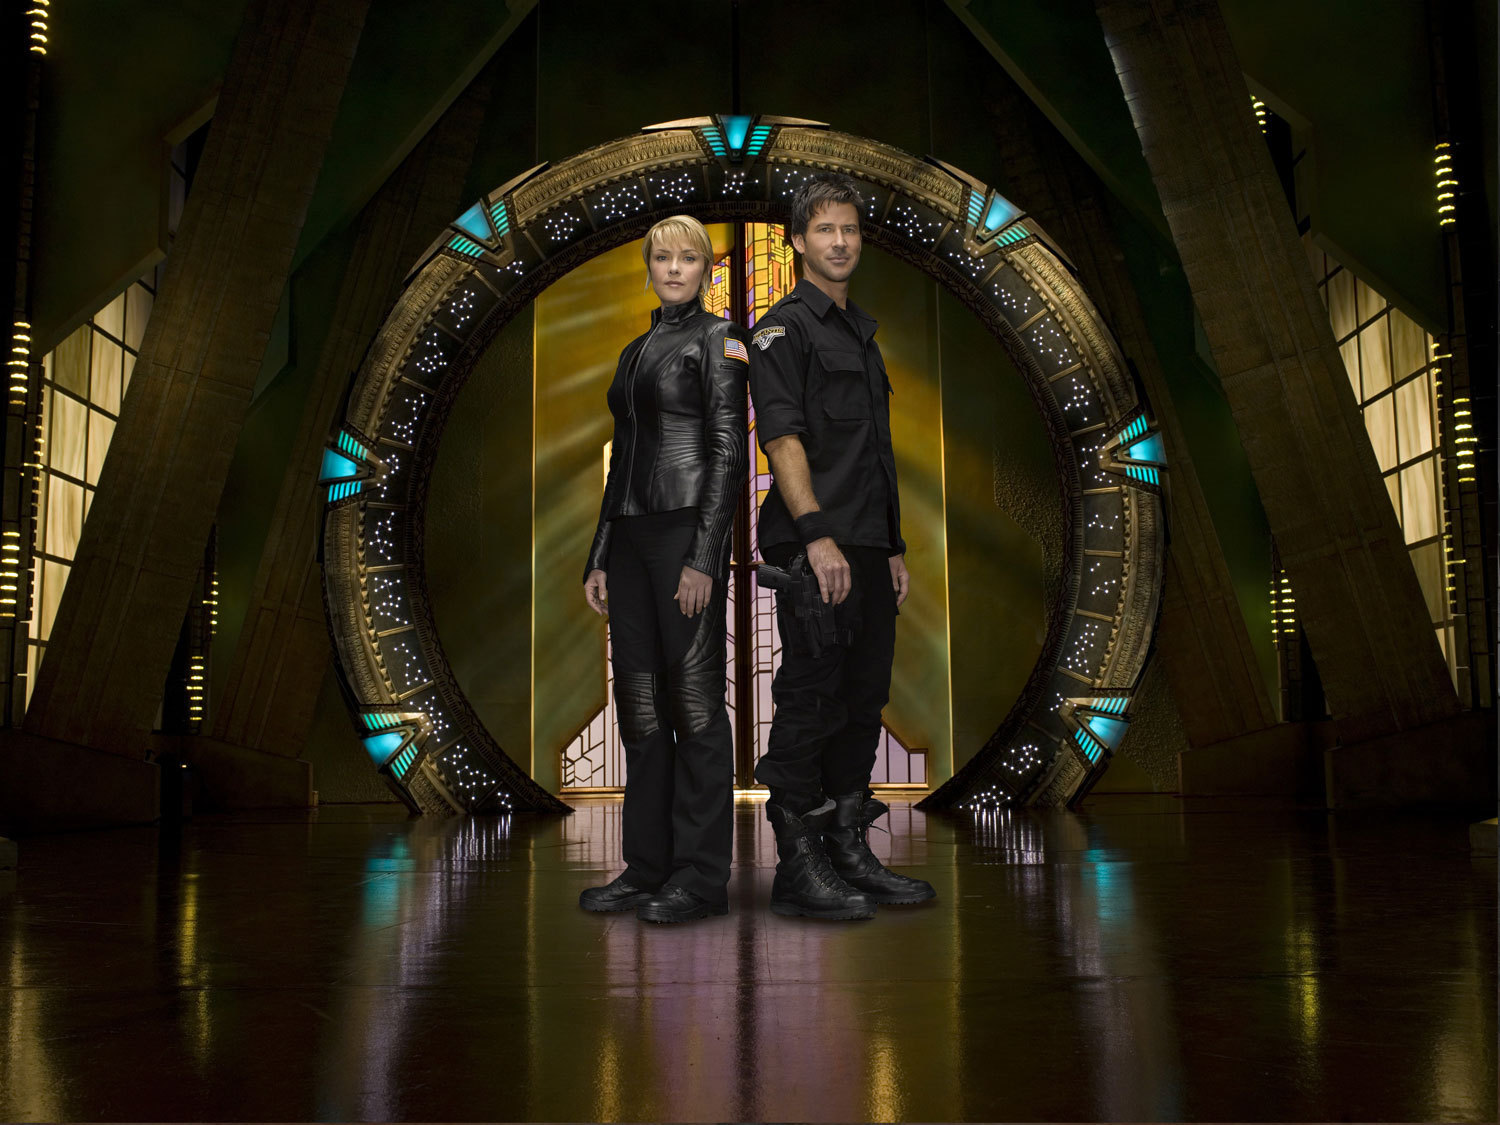 [Jeu] Association d'images - Page 5 Stargate-atlantis-stargate-sg1-atlantis-2469704-1500-1125